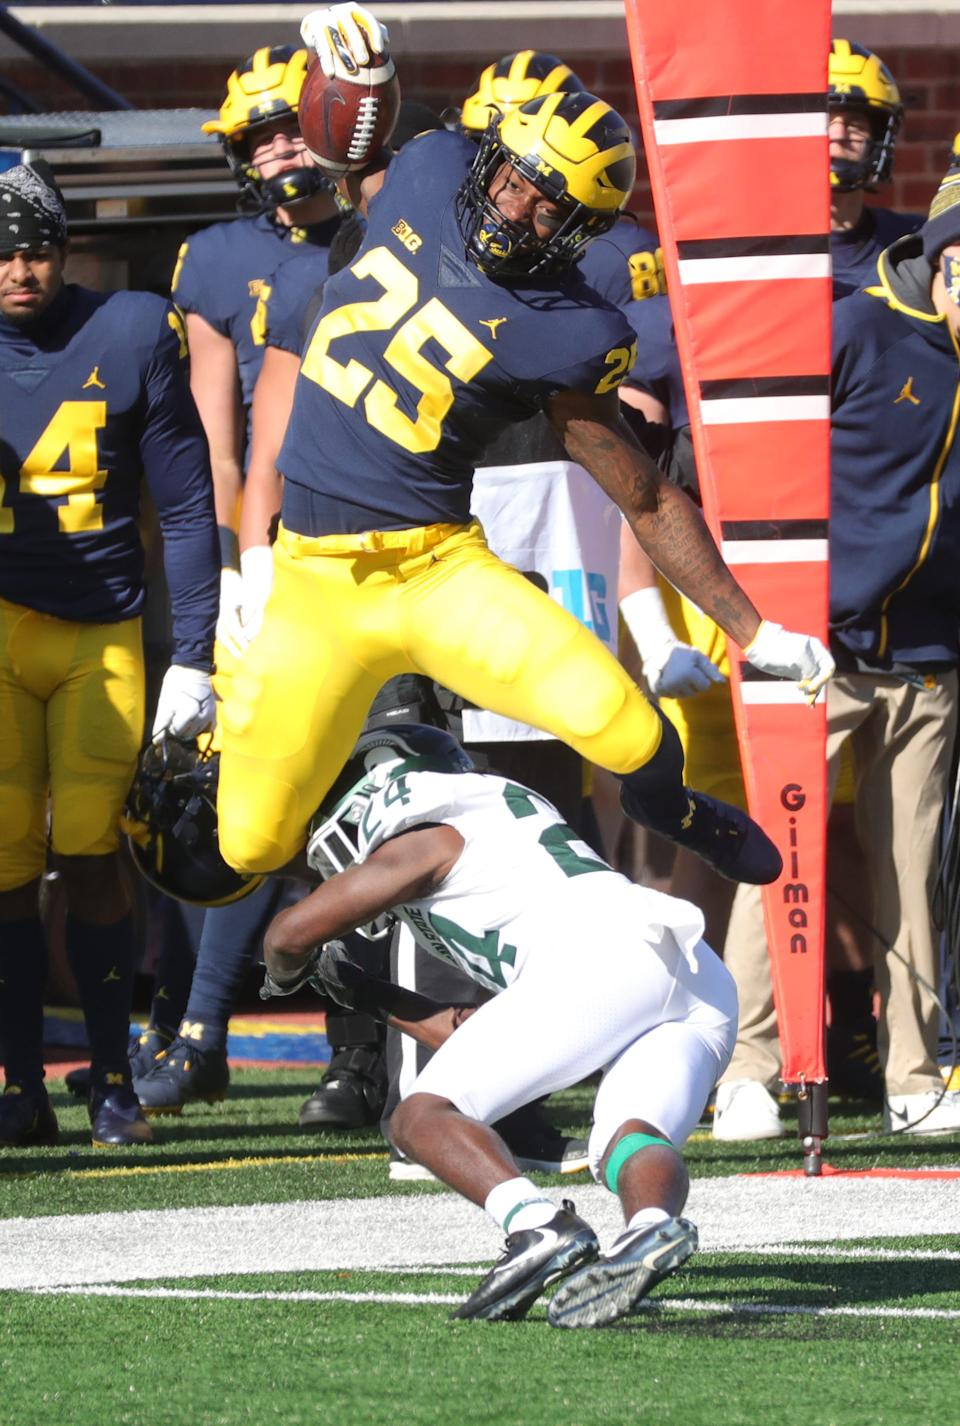 Michigan running back Hassan Haskins is tackled by Michigan State safety Tre Person at Michigan Stadium on Saturday, Oct. 31, 2020.